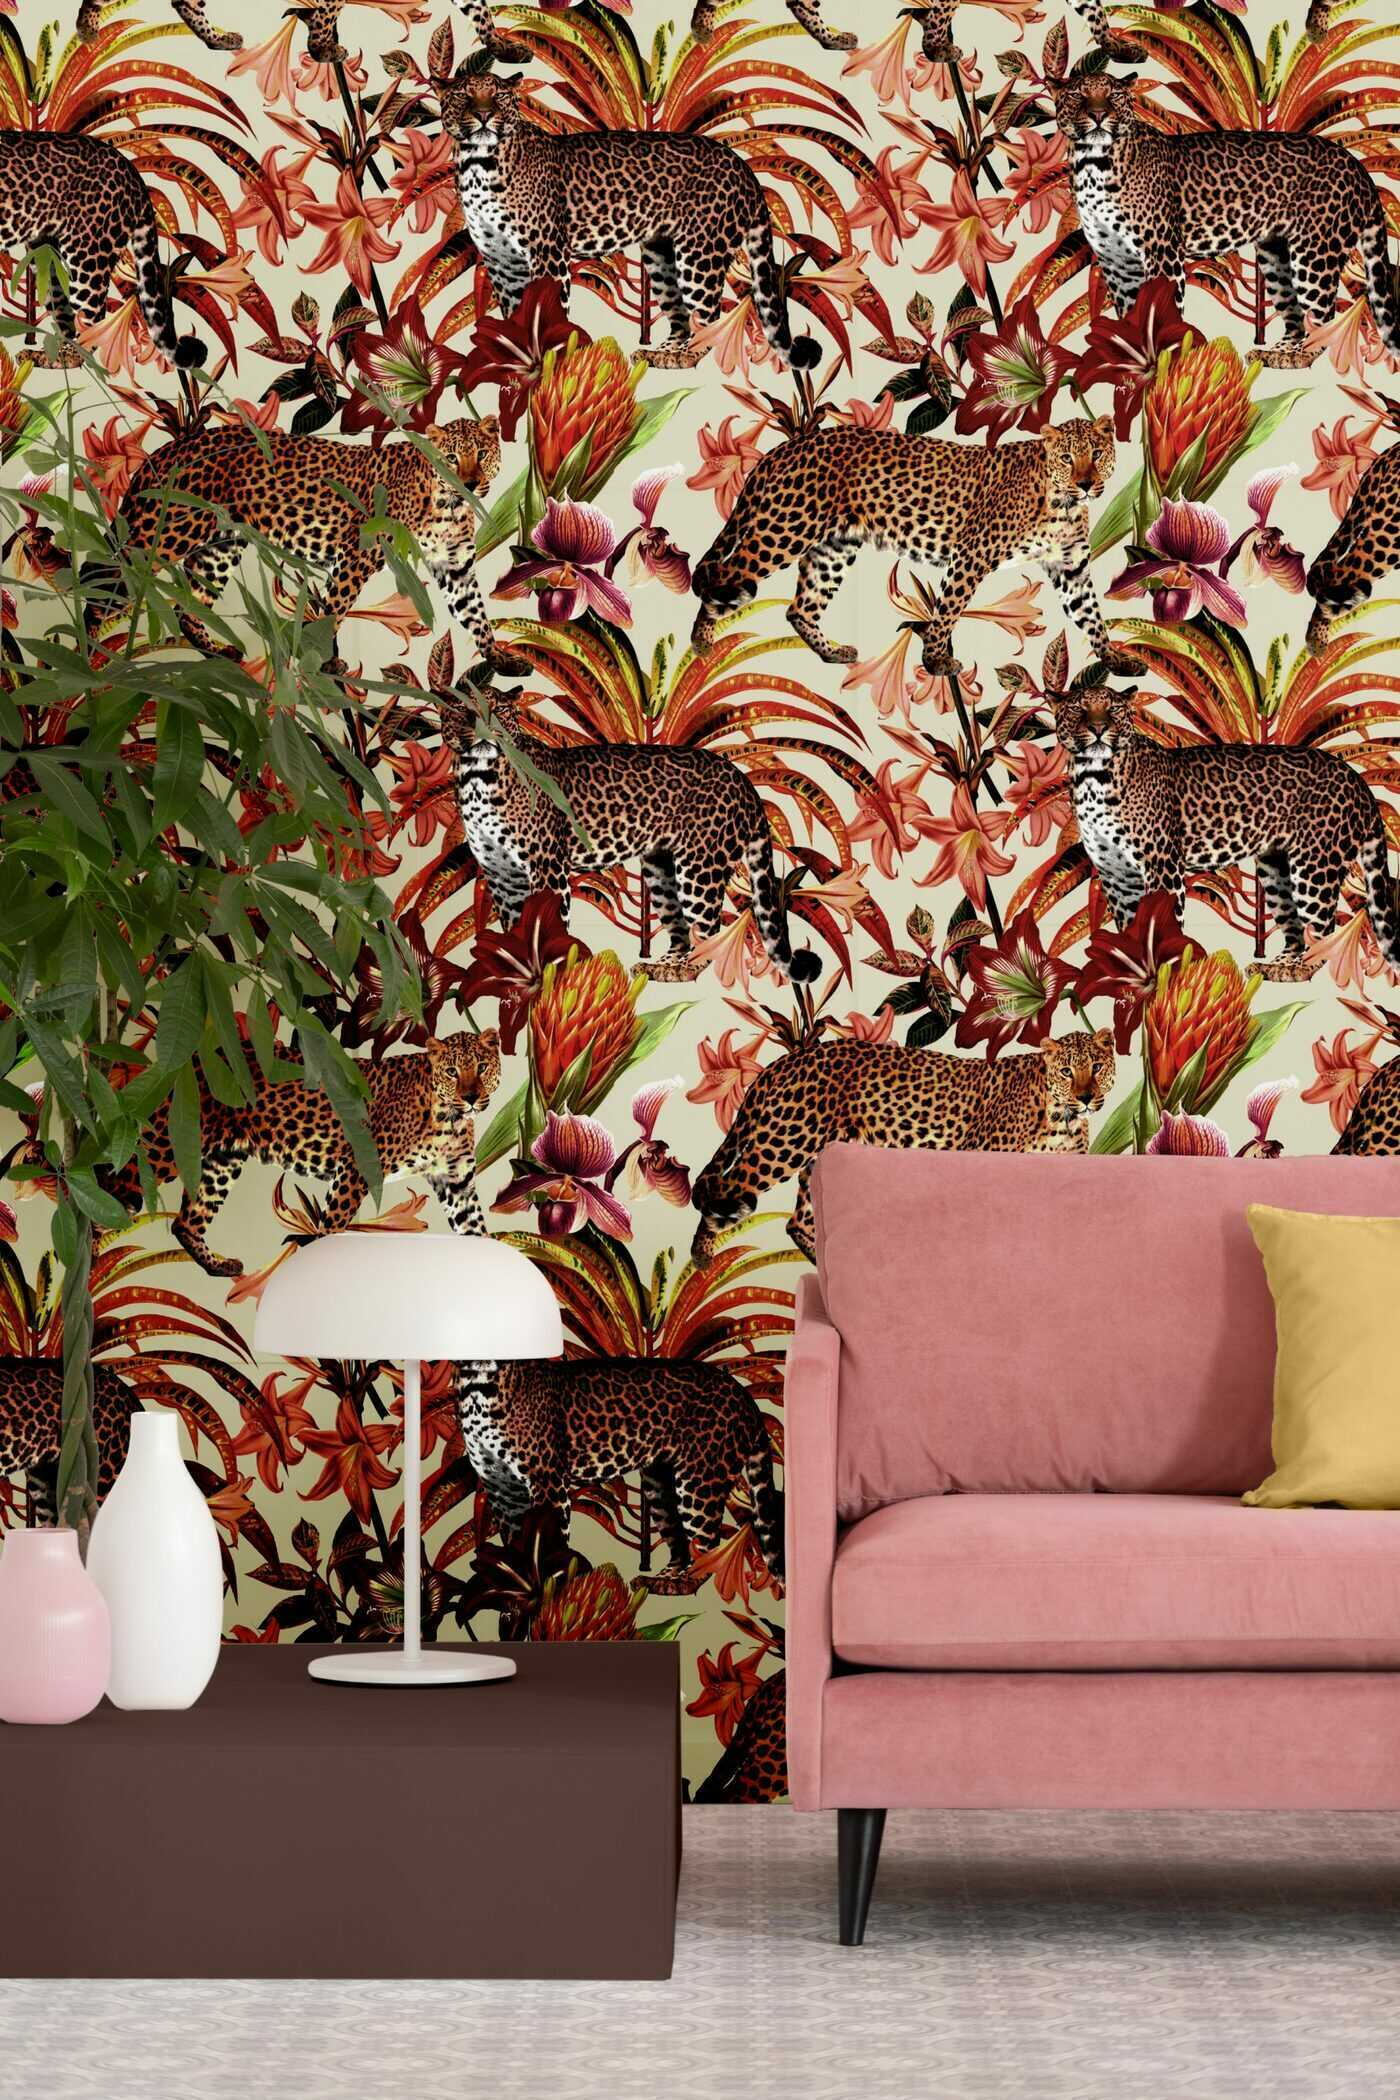 Meet Pantera. He's strong, sexy and part of our new take on animal prints. Our newest line of fabrics, wallpaper and trim come in three debut colorways and feature a large stalking leopard, named Pantera, of course.